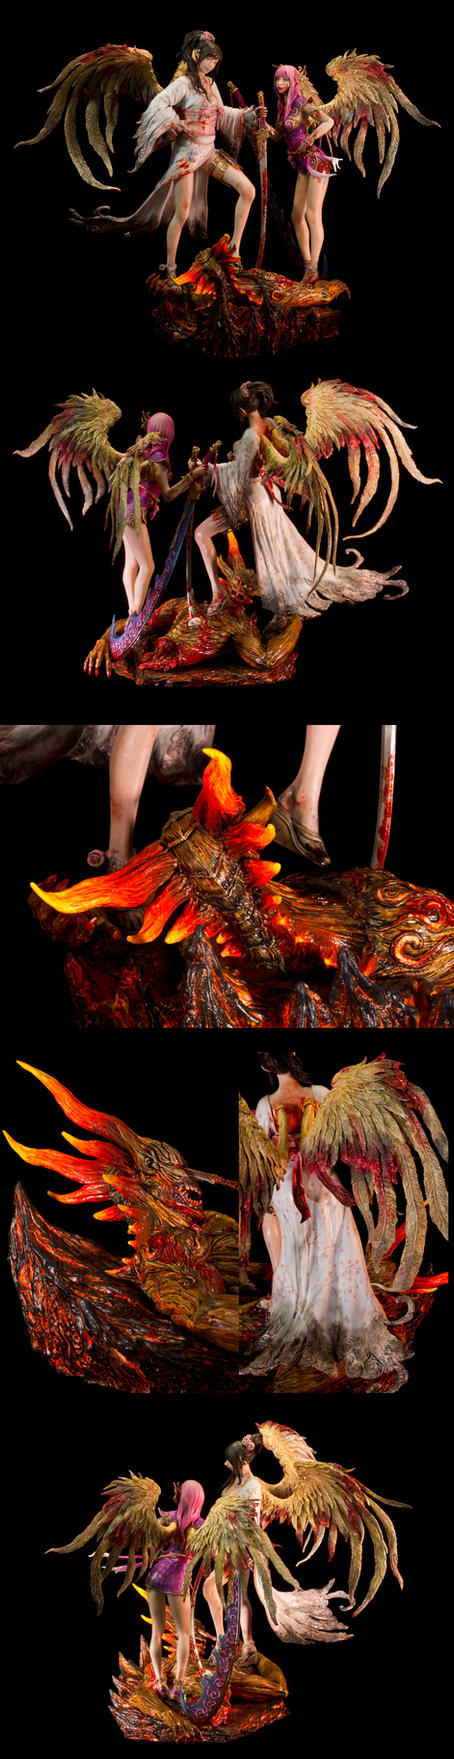 Guardian's Sacrifice collage by sivousplay